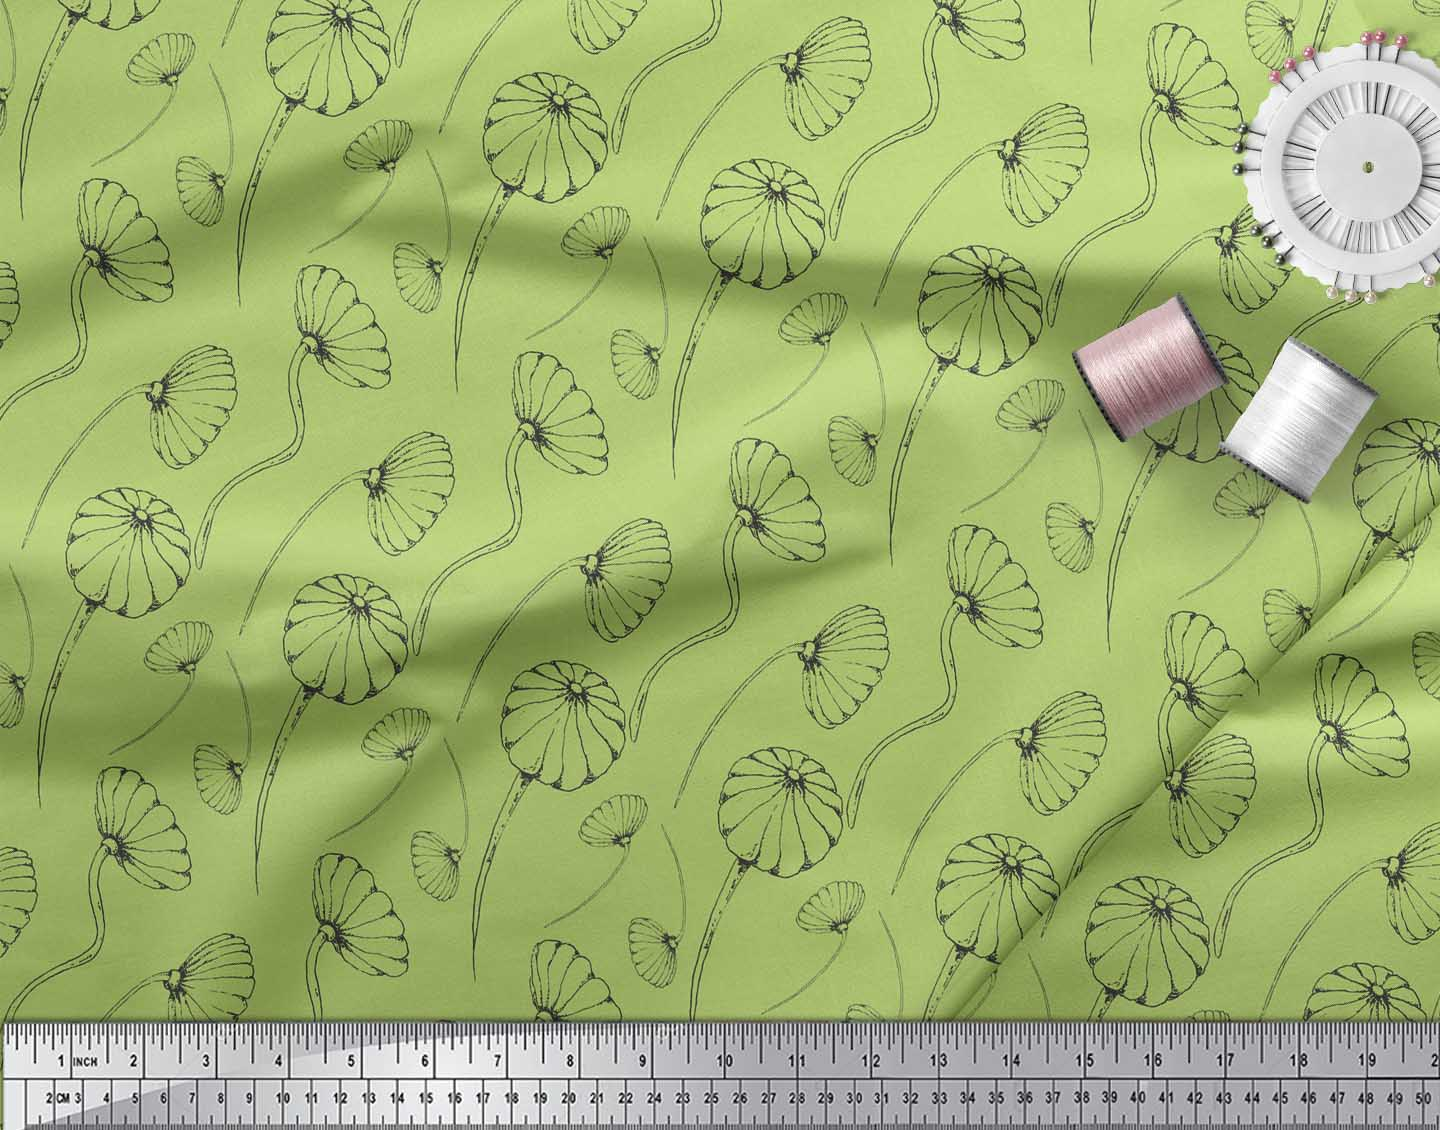 Soimoi-Green-Cotton-Poplin-Fabric-Artistic-Floral-Printed-Fabric-6hz thumbnail 3